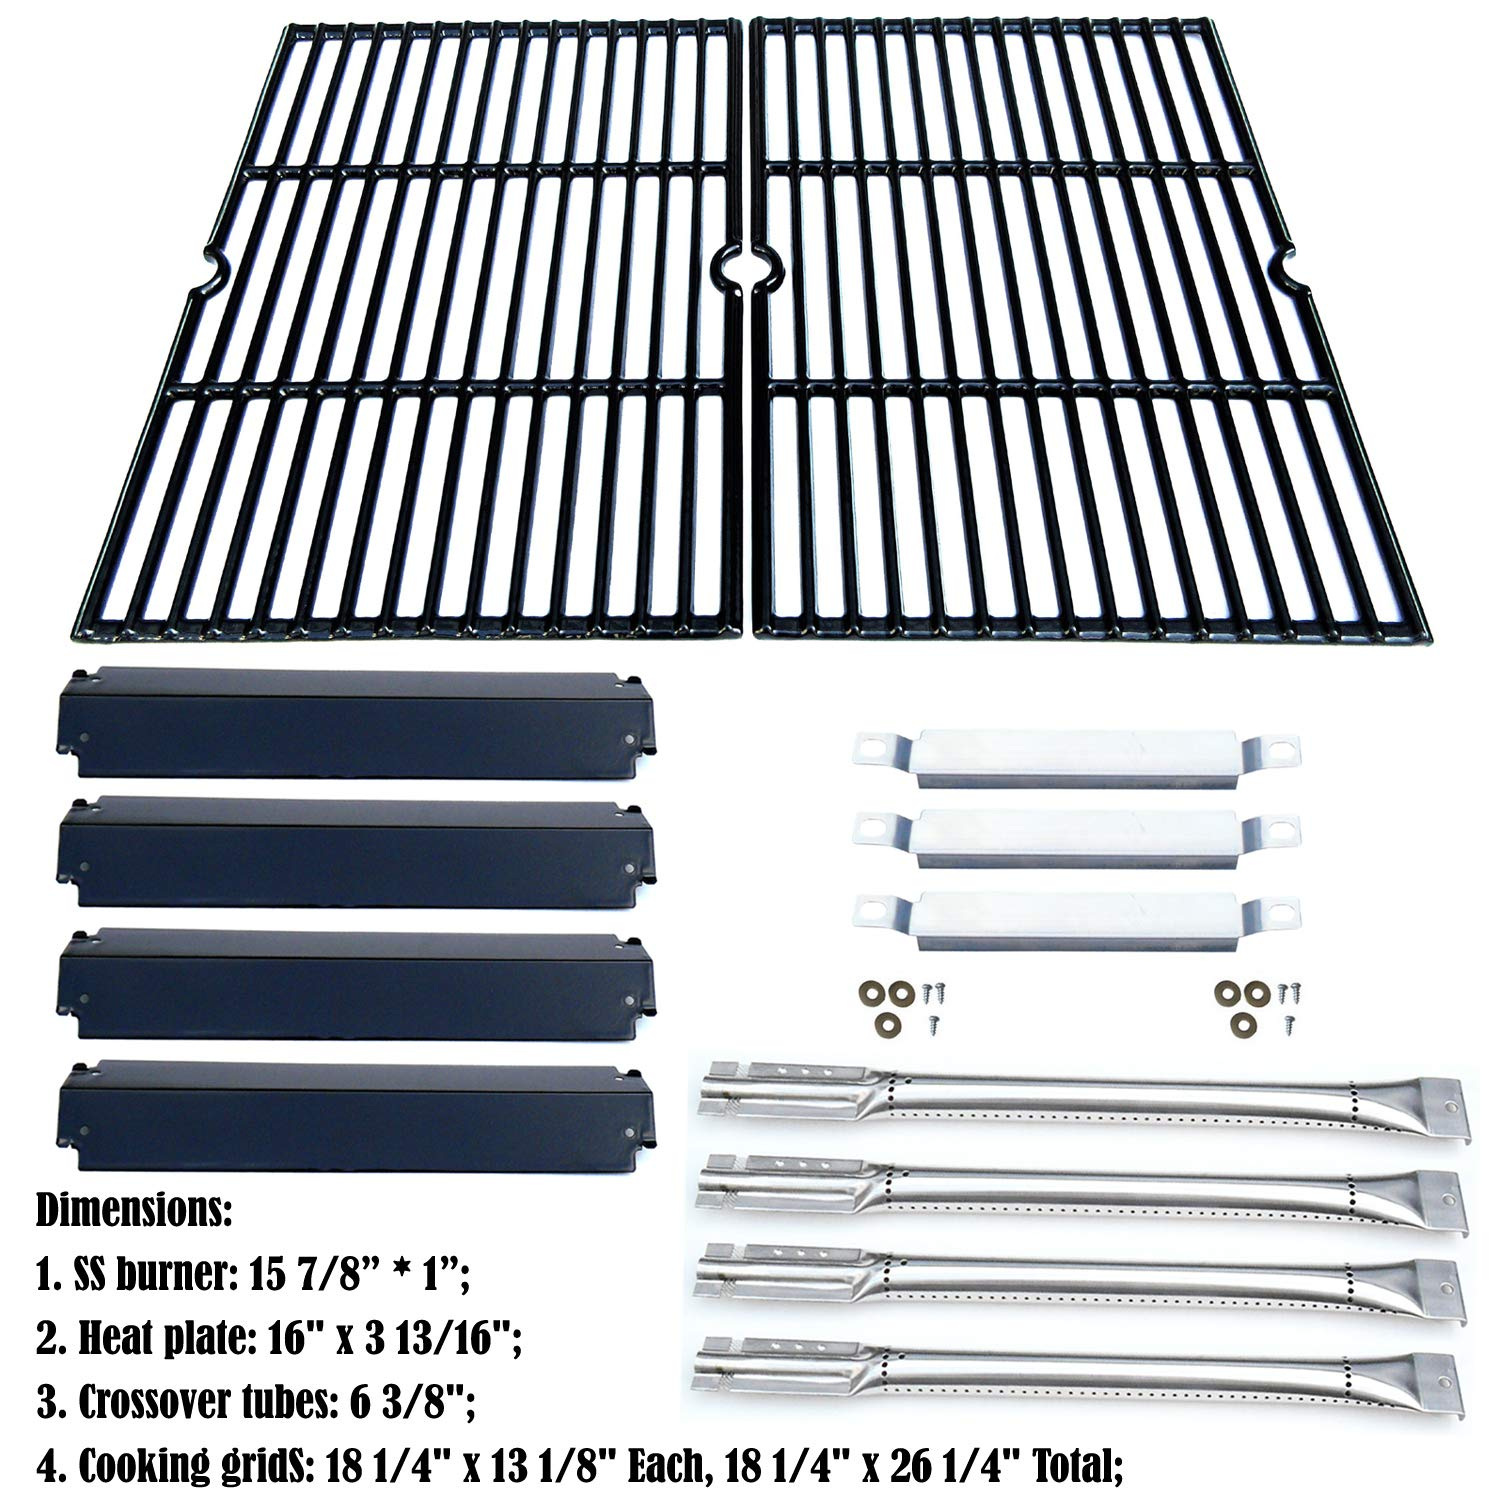 Direct store Parts Kit DG166 Replacement Charbroil Commercial Gas Grill 463268606,463268007 Repair Kit (SS Burner + SS carry-over tubes + Porcelain Steel Heat Plate + Porcelain Cast Iron Cooking Grid) by Direct store (Image #2)